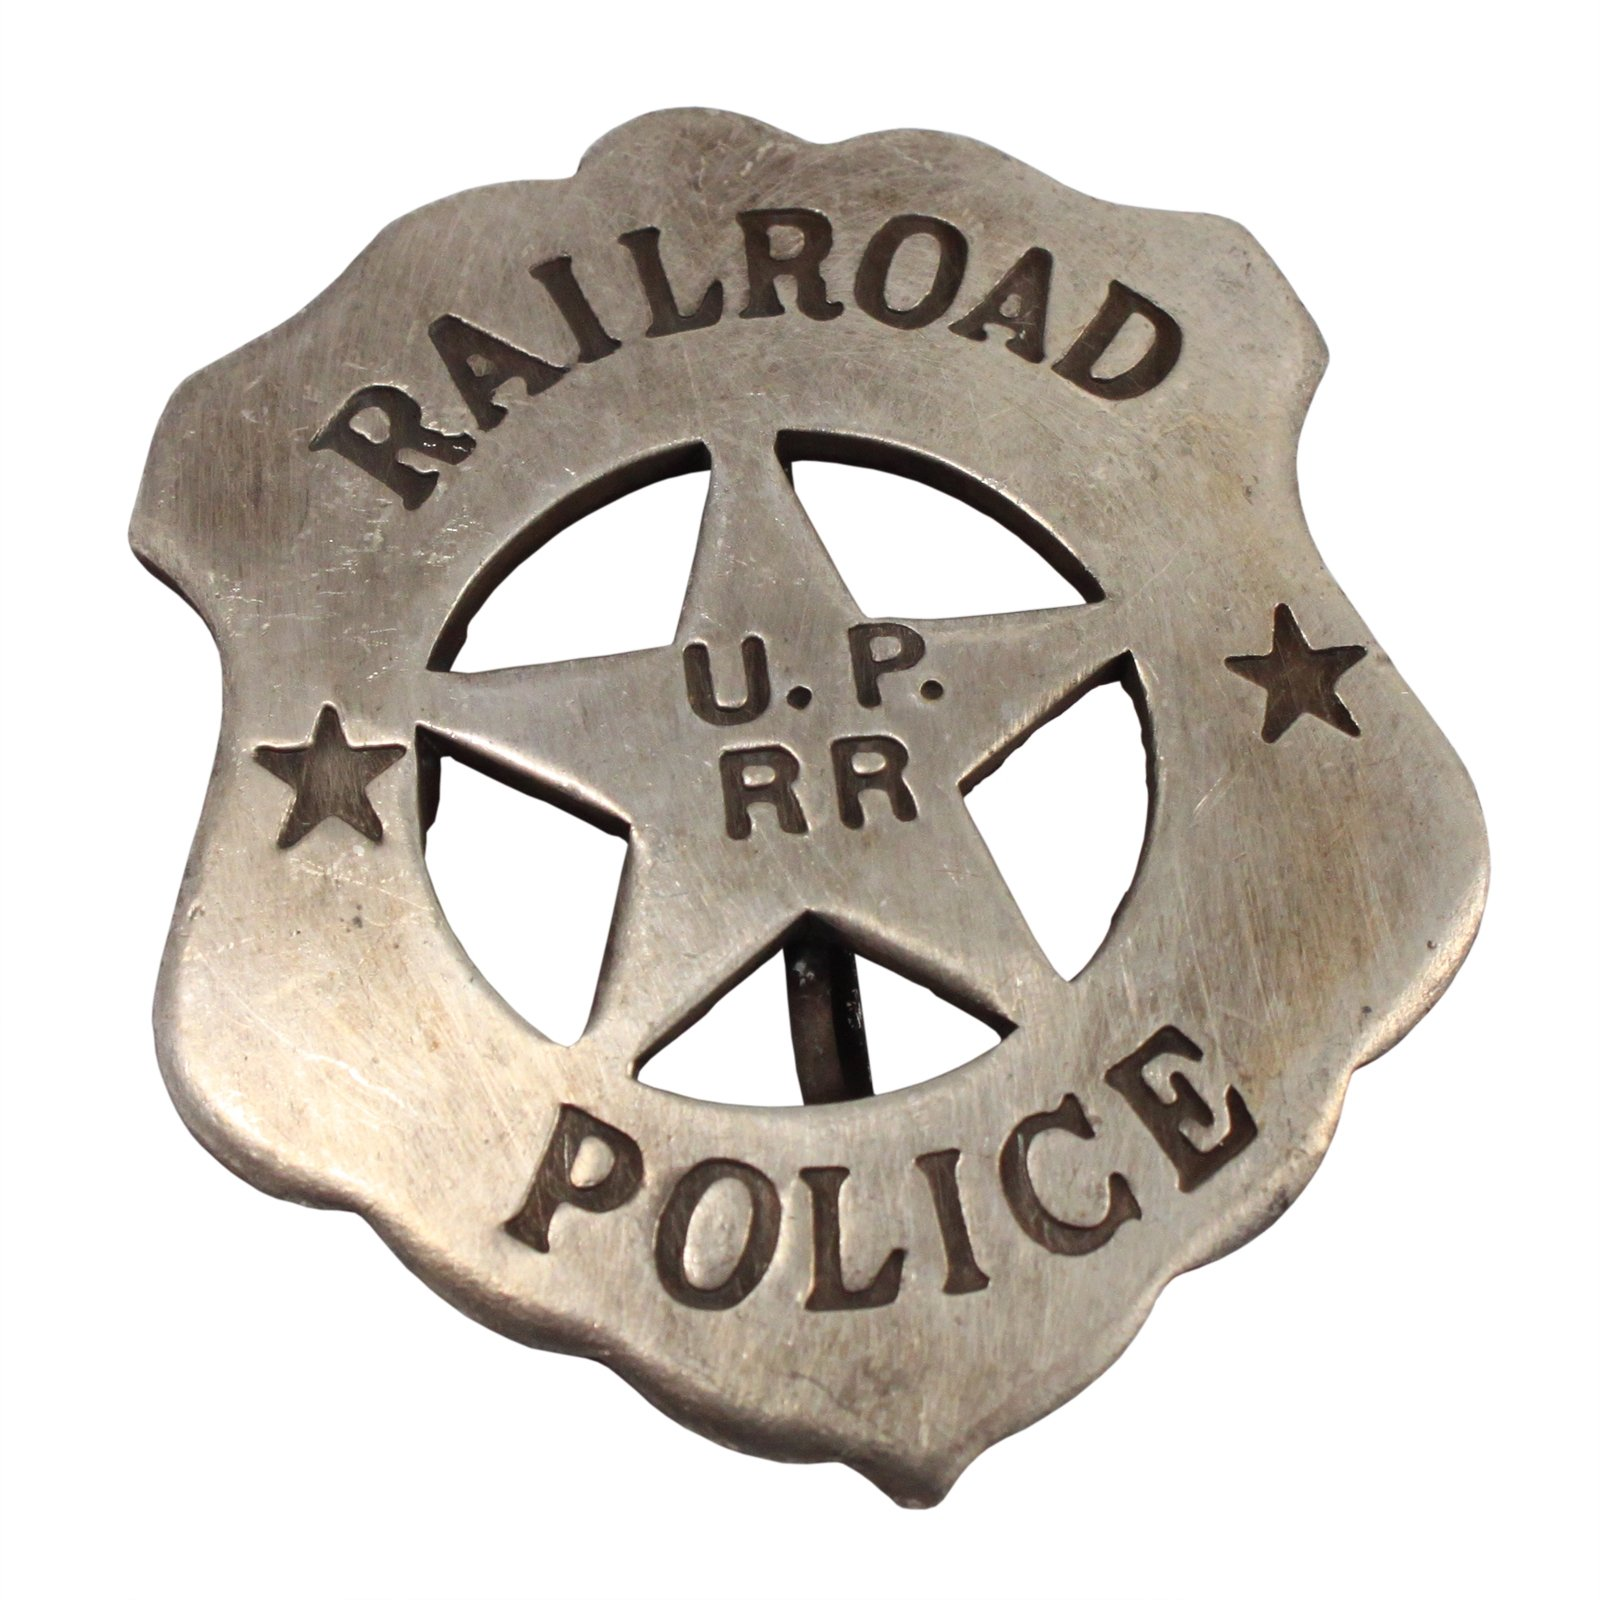 Unioin Pacific Railroad Police Old West Badge